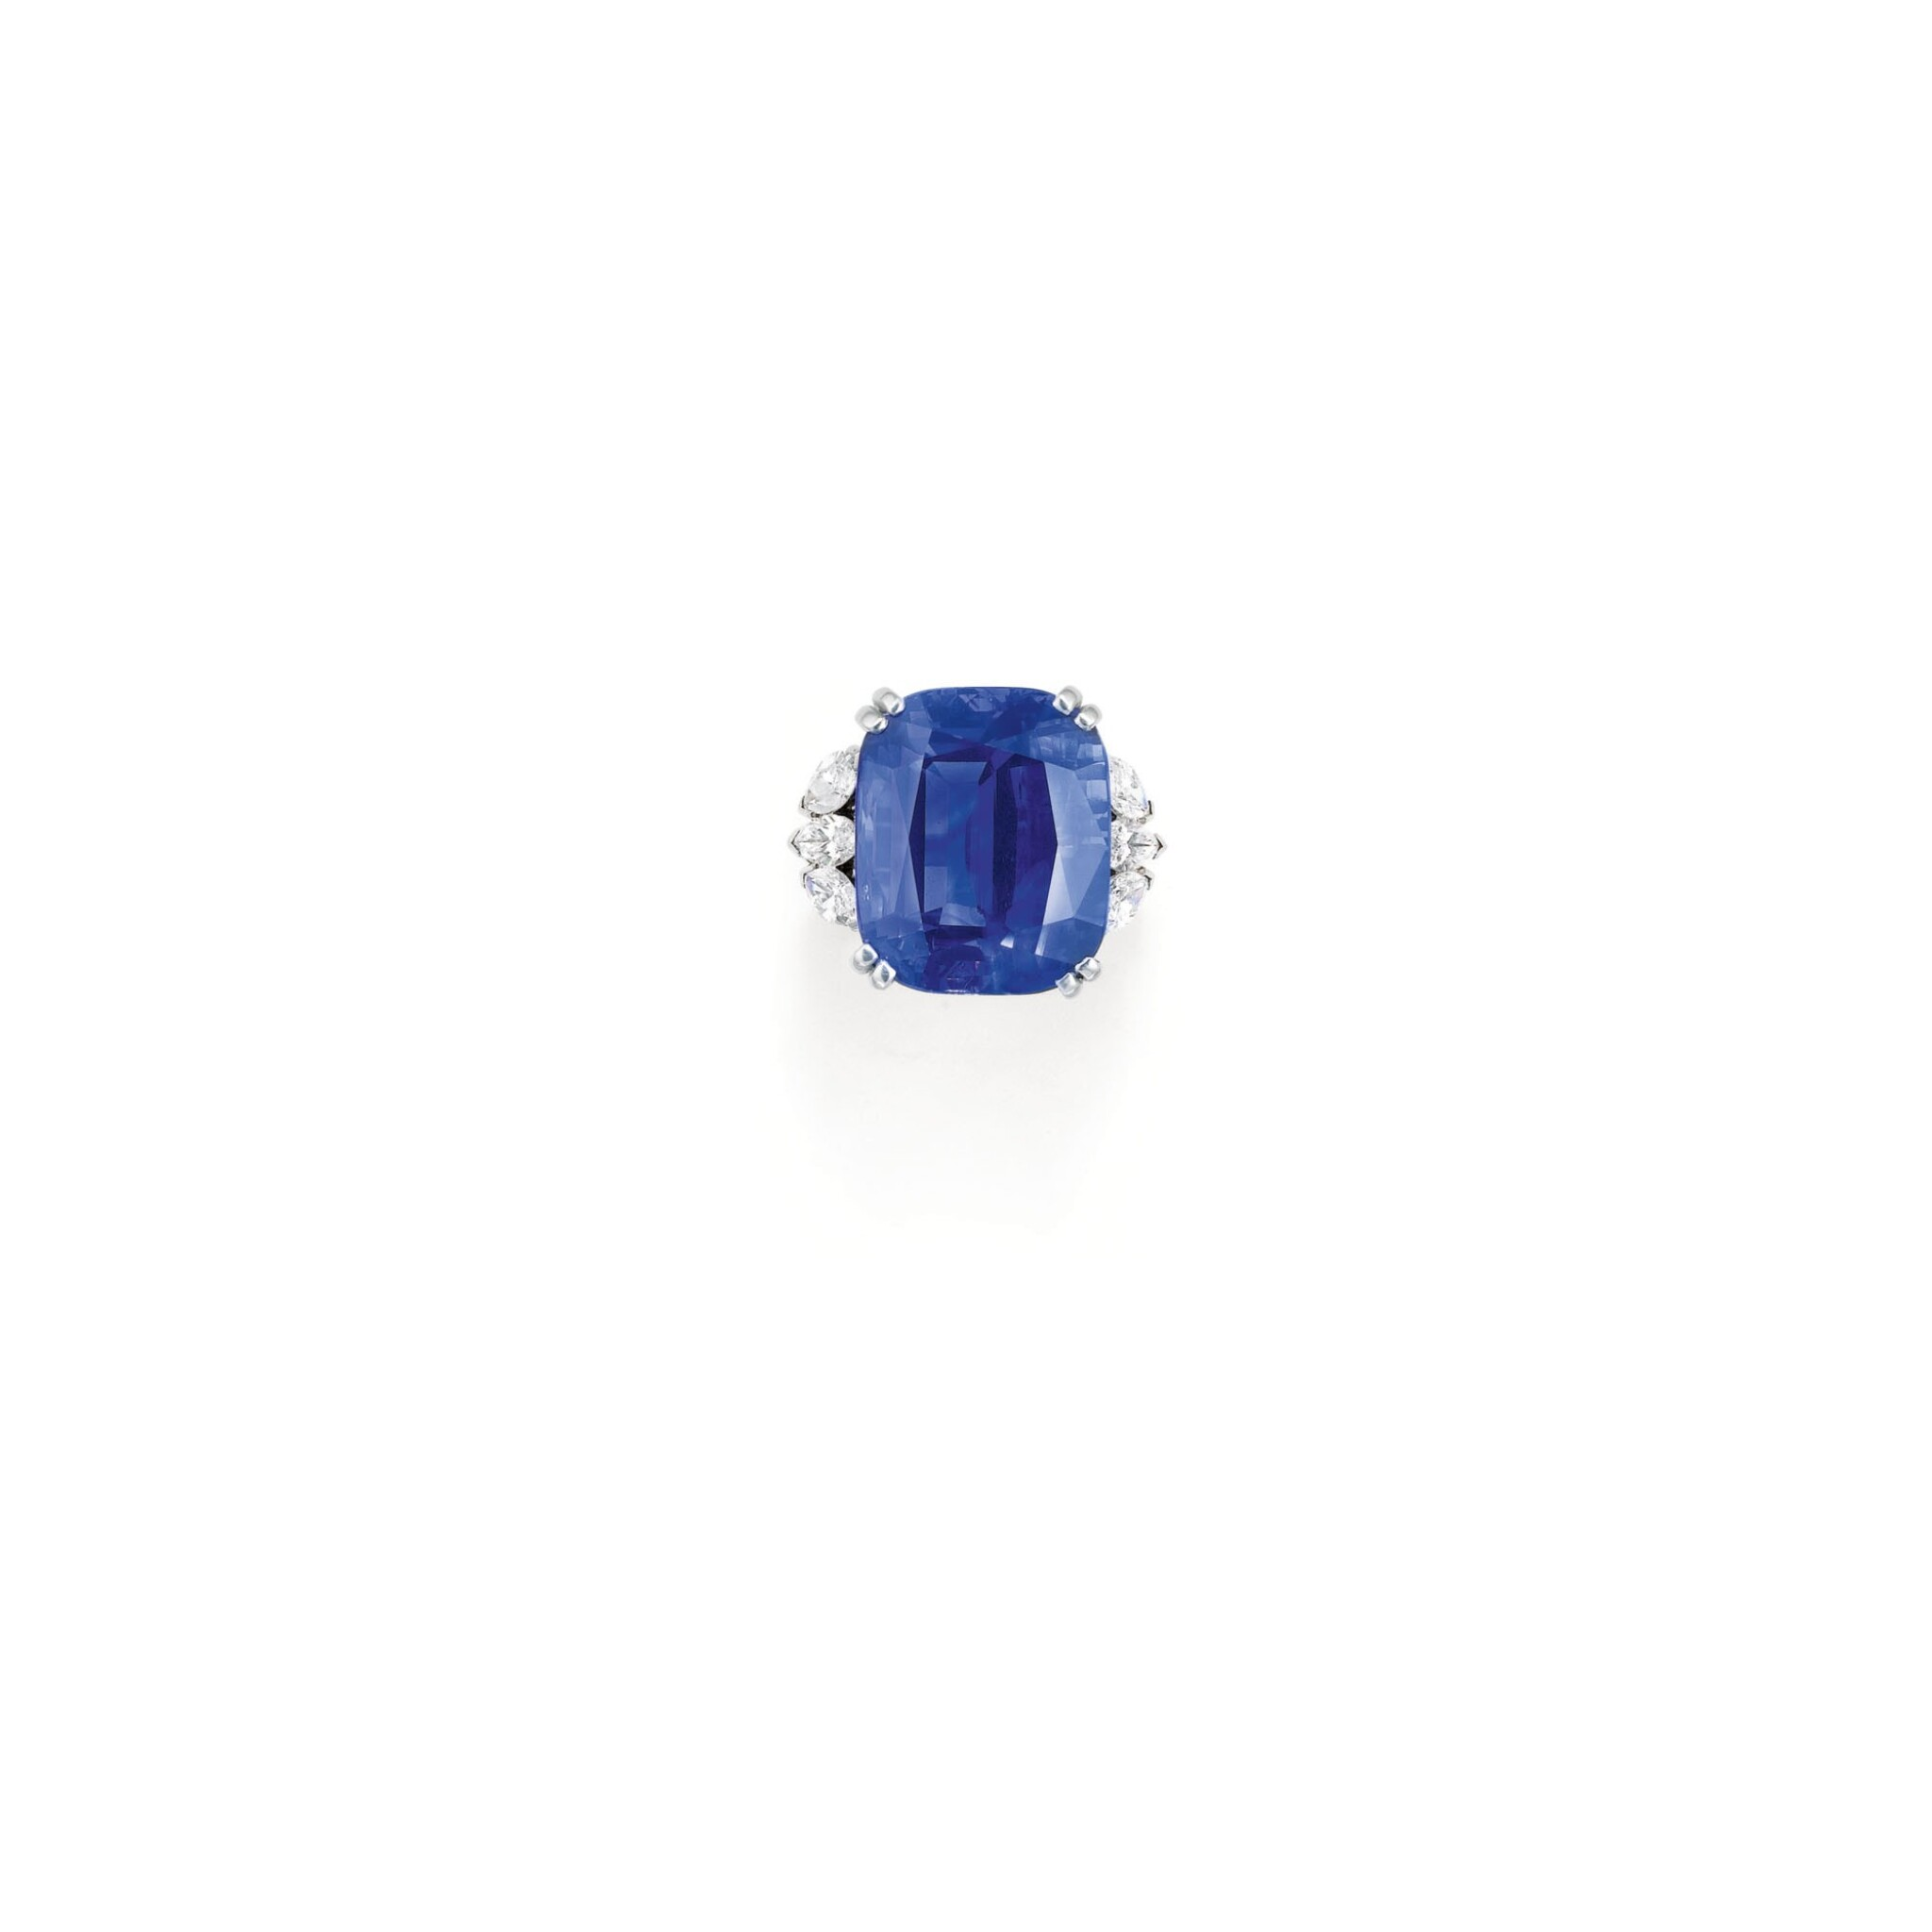 View full screen - View 1 of Lot 228. BAGUE SAPHIR ET DIAMANTS | SAPPHIRE AND DIAMOND RING.